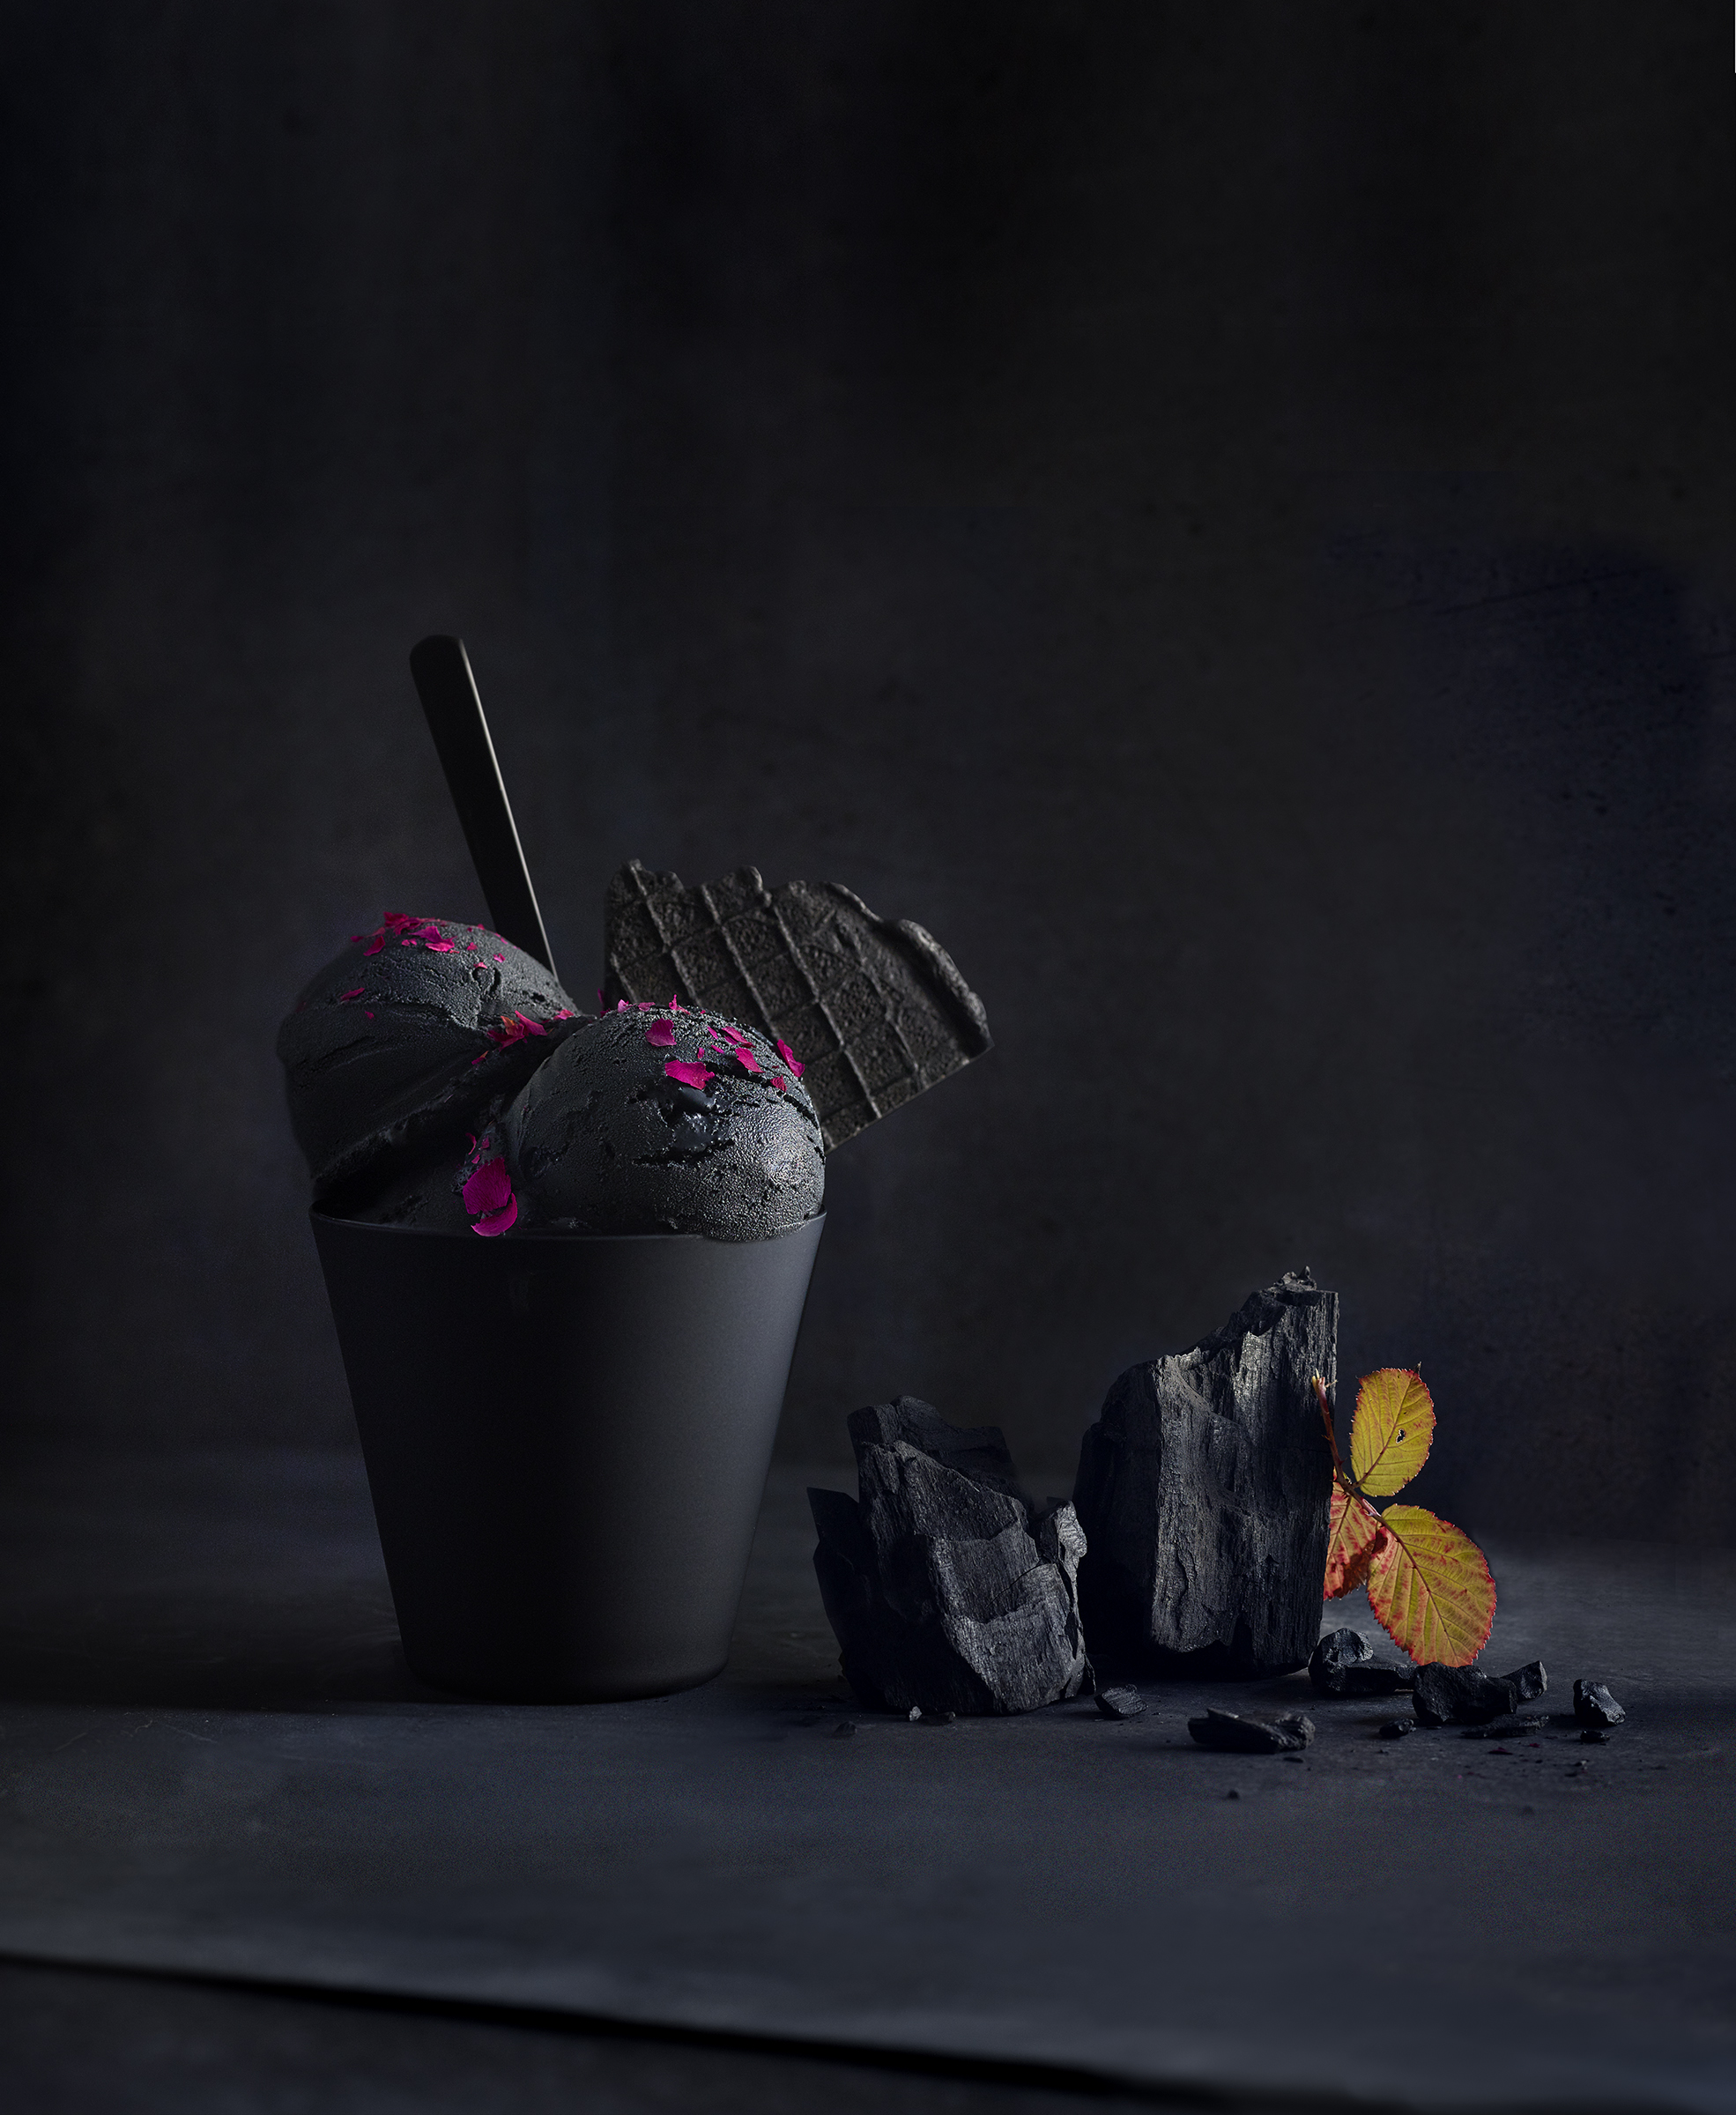 Icecream_Black_Charcoal_LowRes